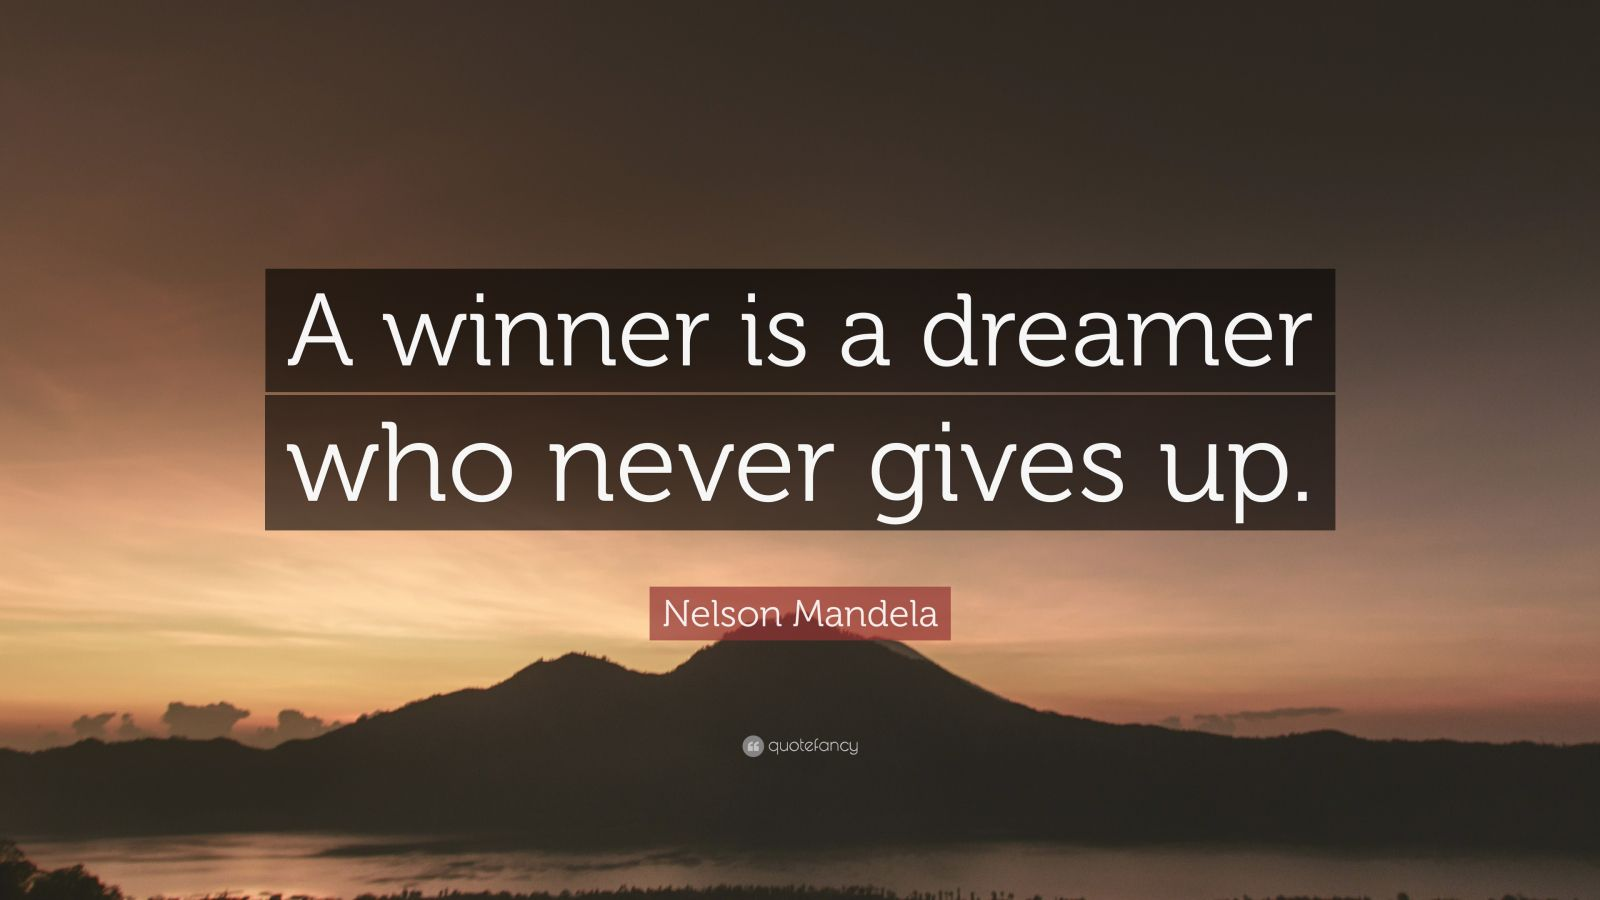 Dreamer Quotes Wallpaper Nelson Mandela Quote A Winner Is A Dreamer Who Never